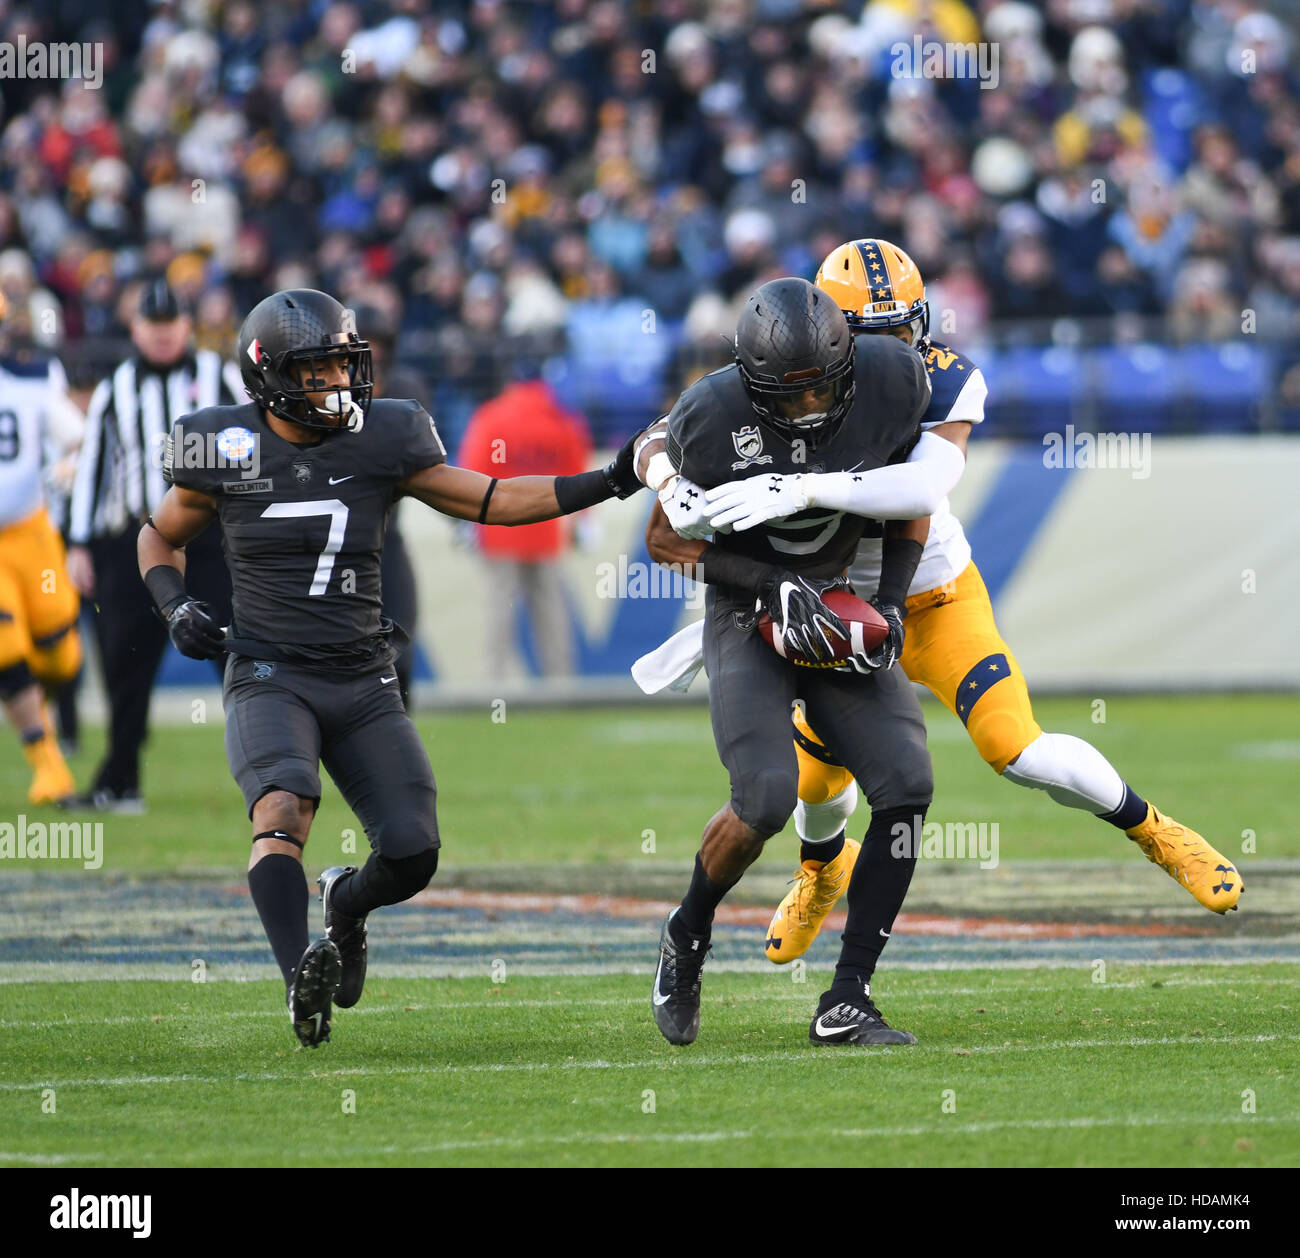 Baltimore, Maryland, USA. 10th Dec, 2016. Army's DB XAVIER MOSS, intercepts the ball during the game at M&T - Stock Image